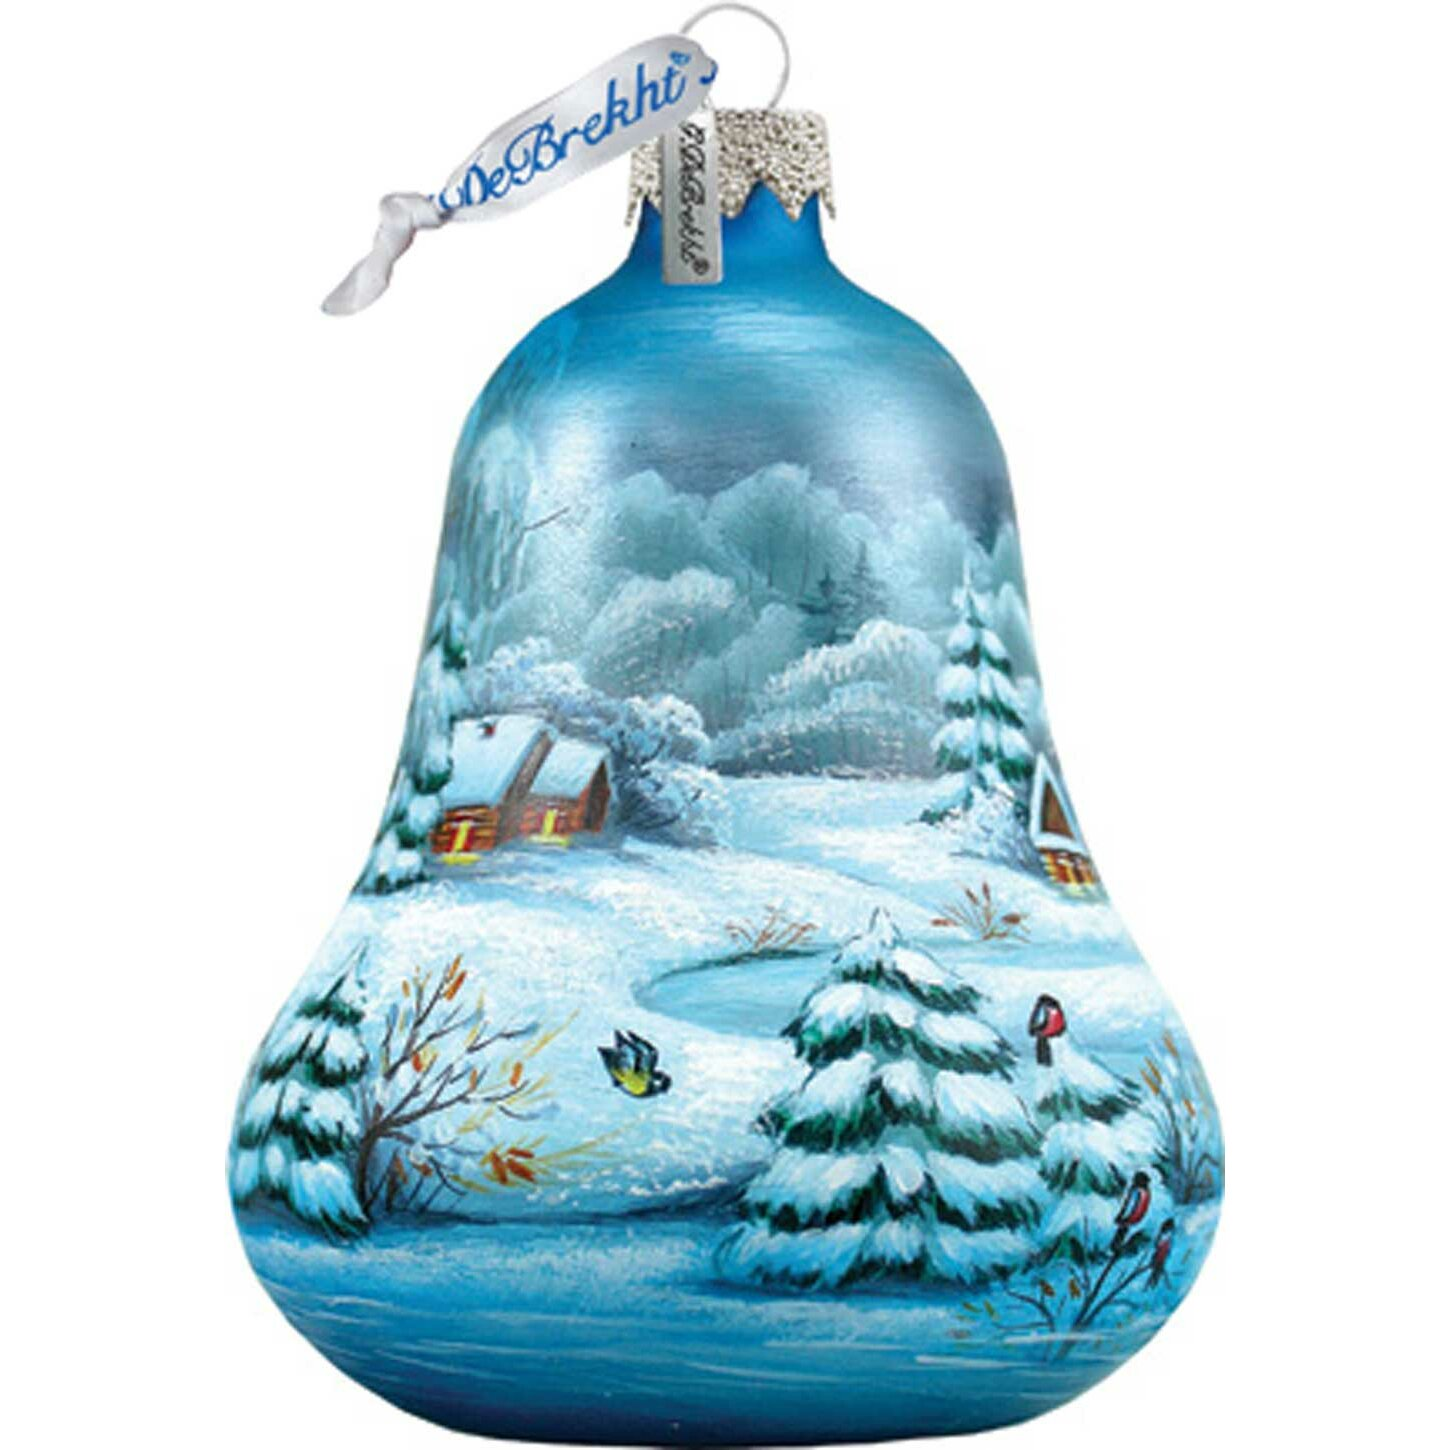 Bell Christmas Tree Ornaments - Unique Christmas Decorations